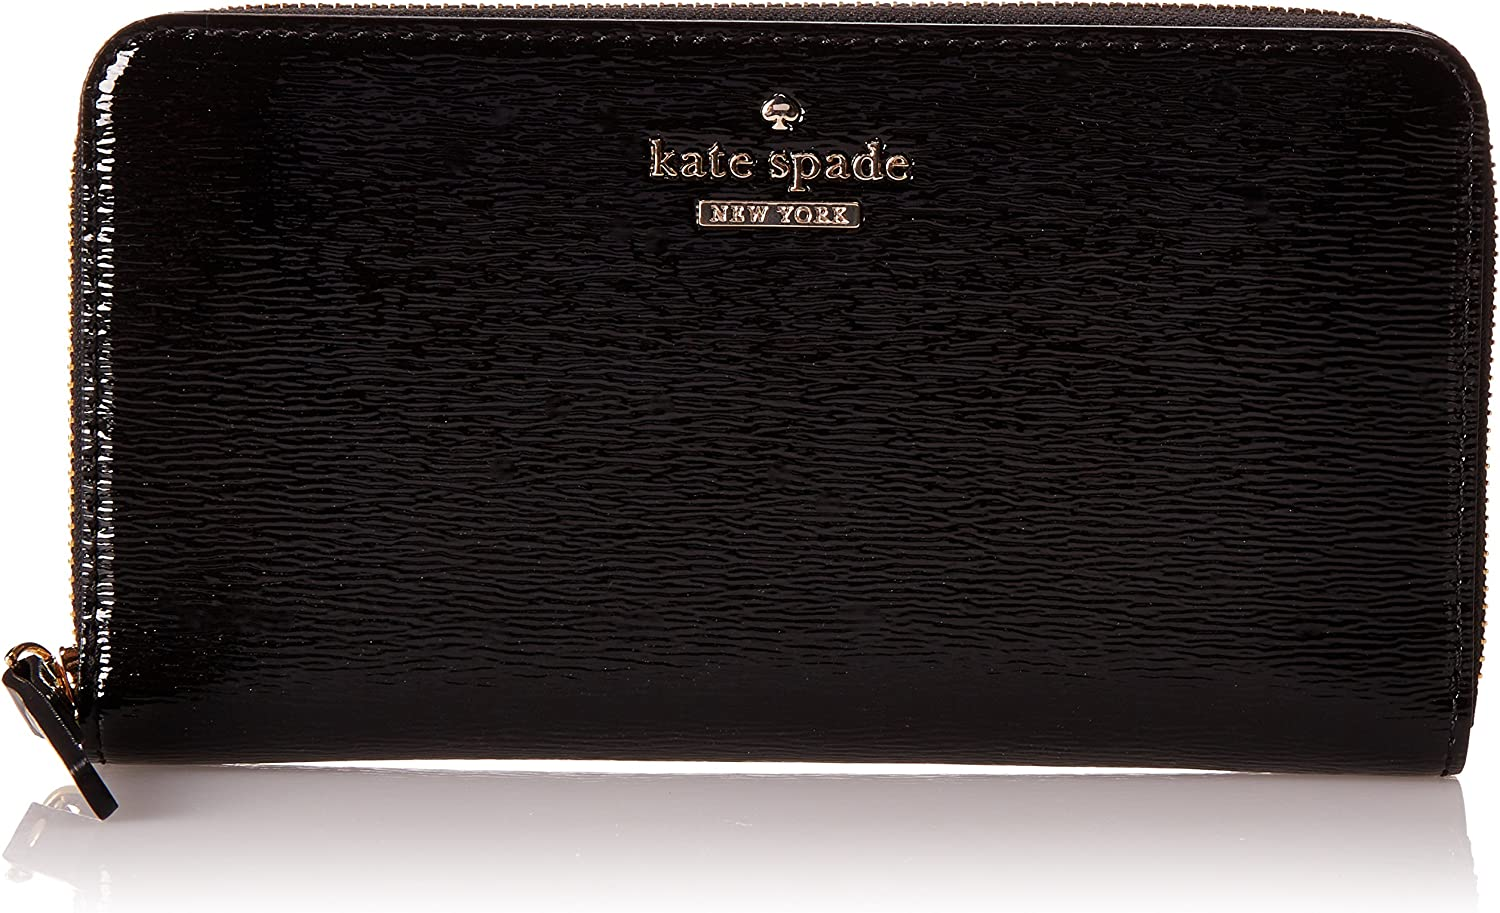 kate spade new york Cedar Street Patent Lacey Wallet